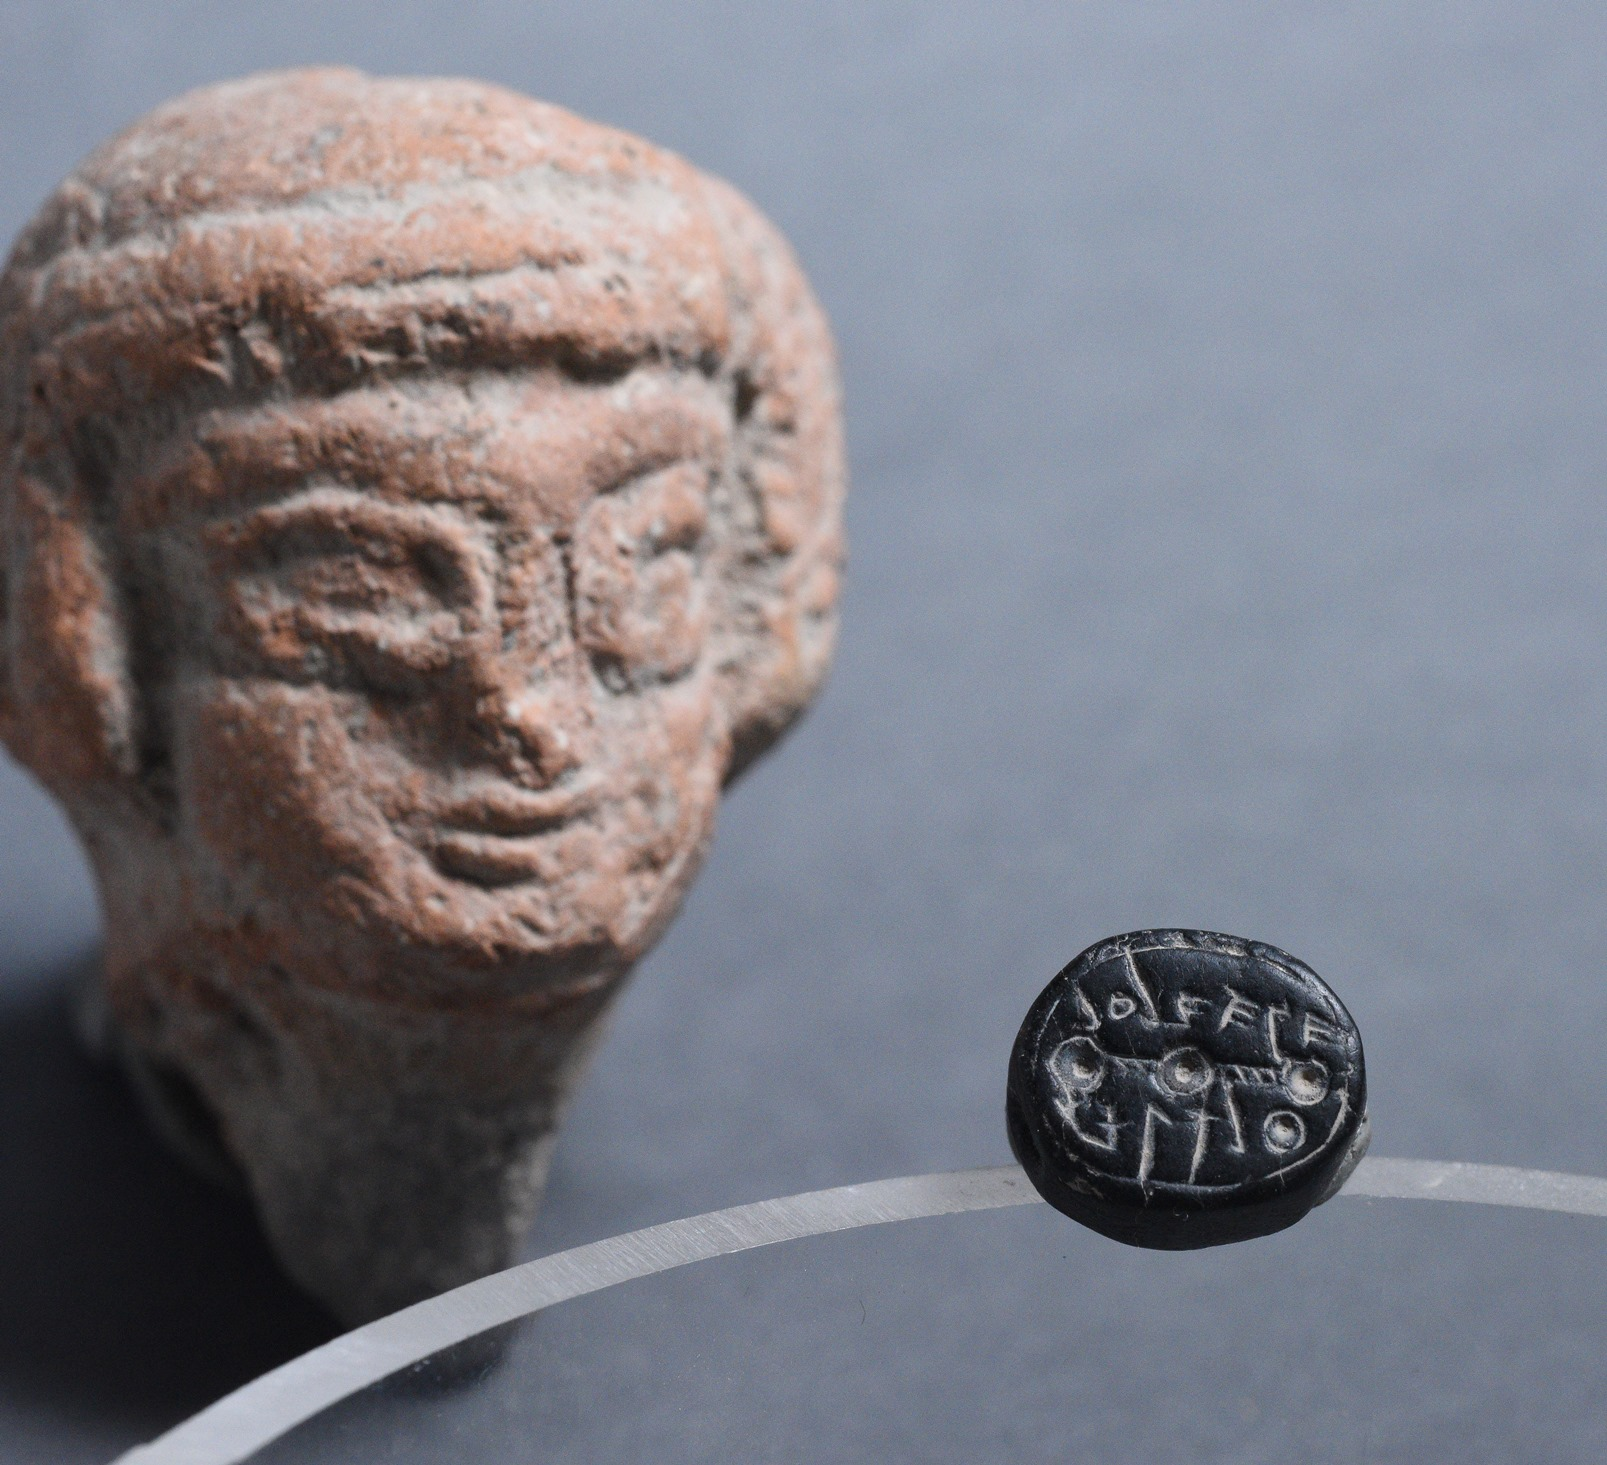 The Elihana seal shown with a figurine of a woman from the First Temple period, which symbolized fertility and was also exposed in the Giv'ati parking lot